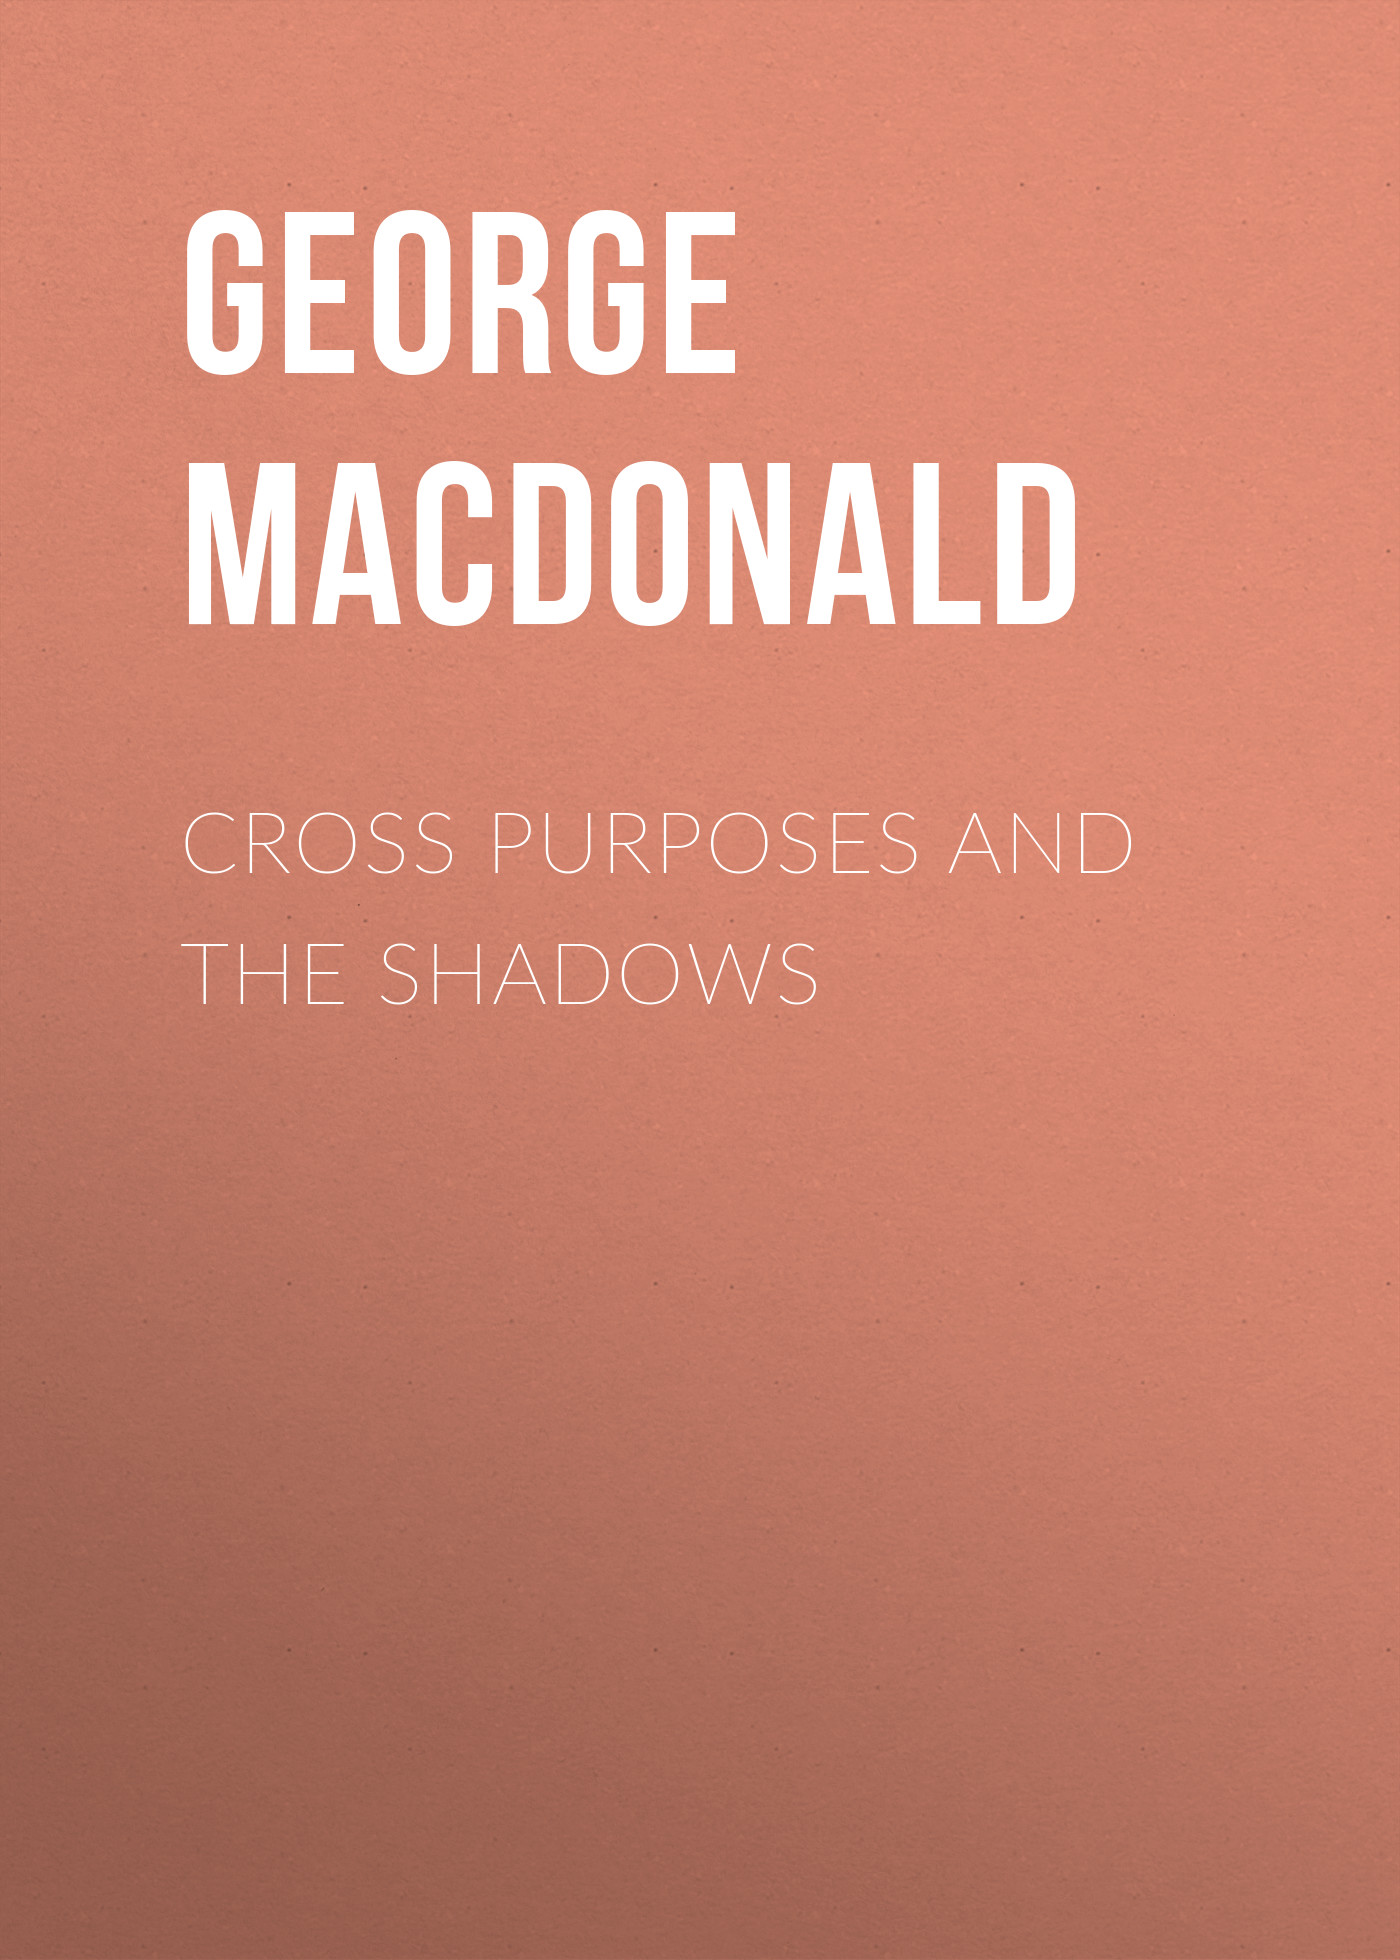 George MacDonald Cross Purposes and The Shadows flotsam and jetsam flotsam